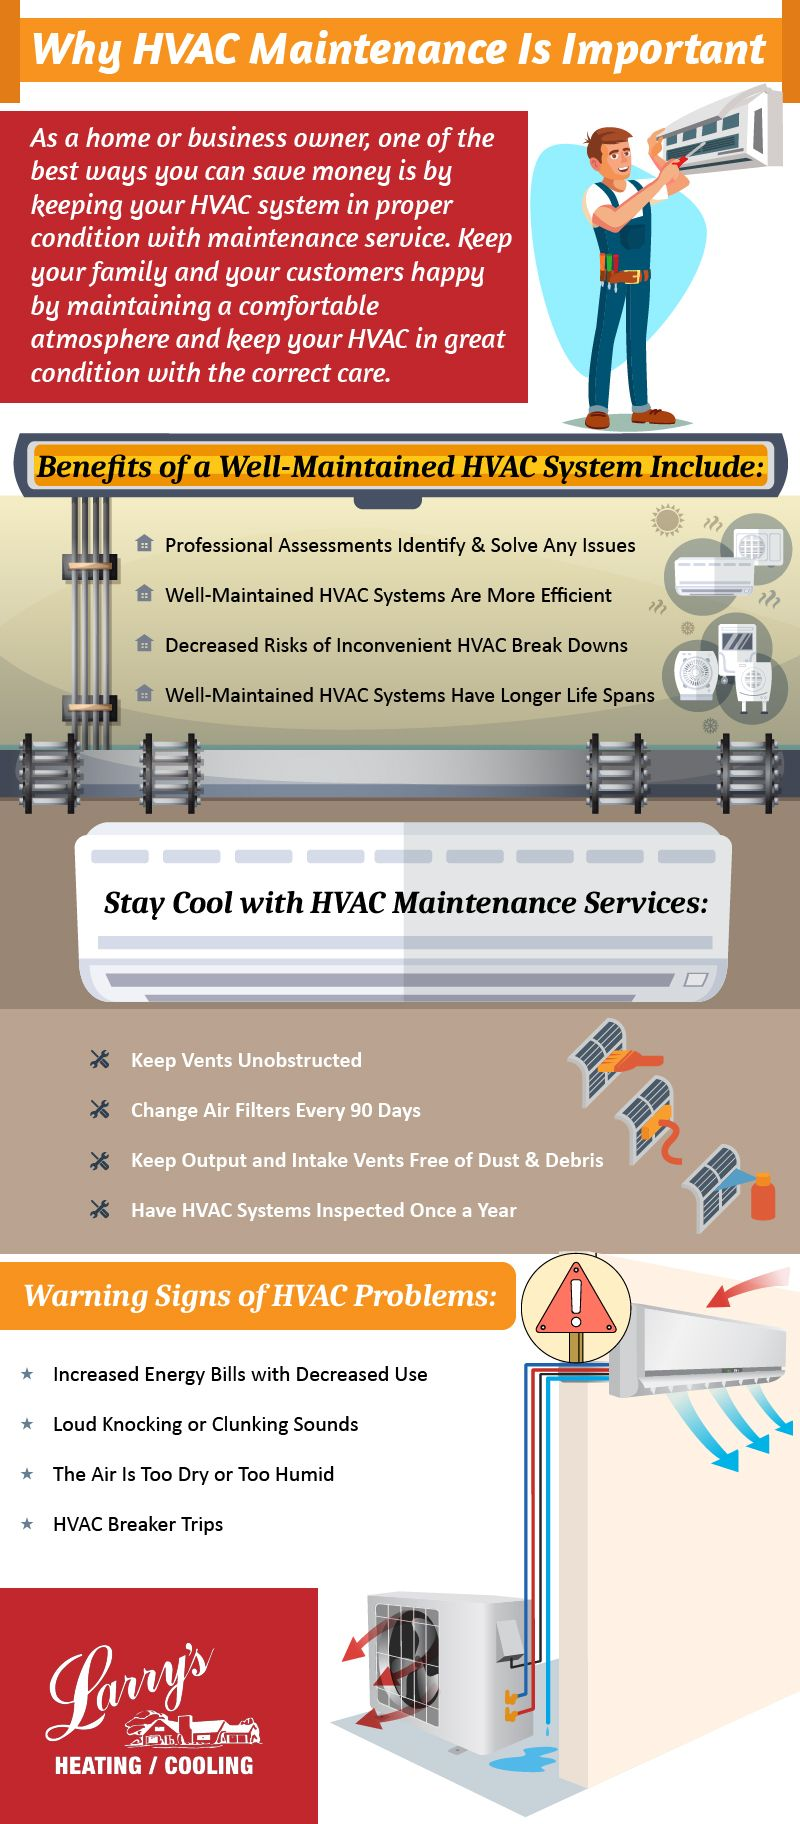 Pin By Larry S Heating Cooling Inc On Why Hvac Maintenance Is